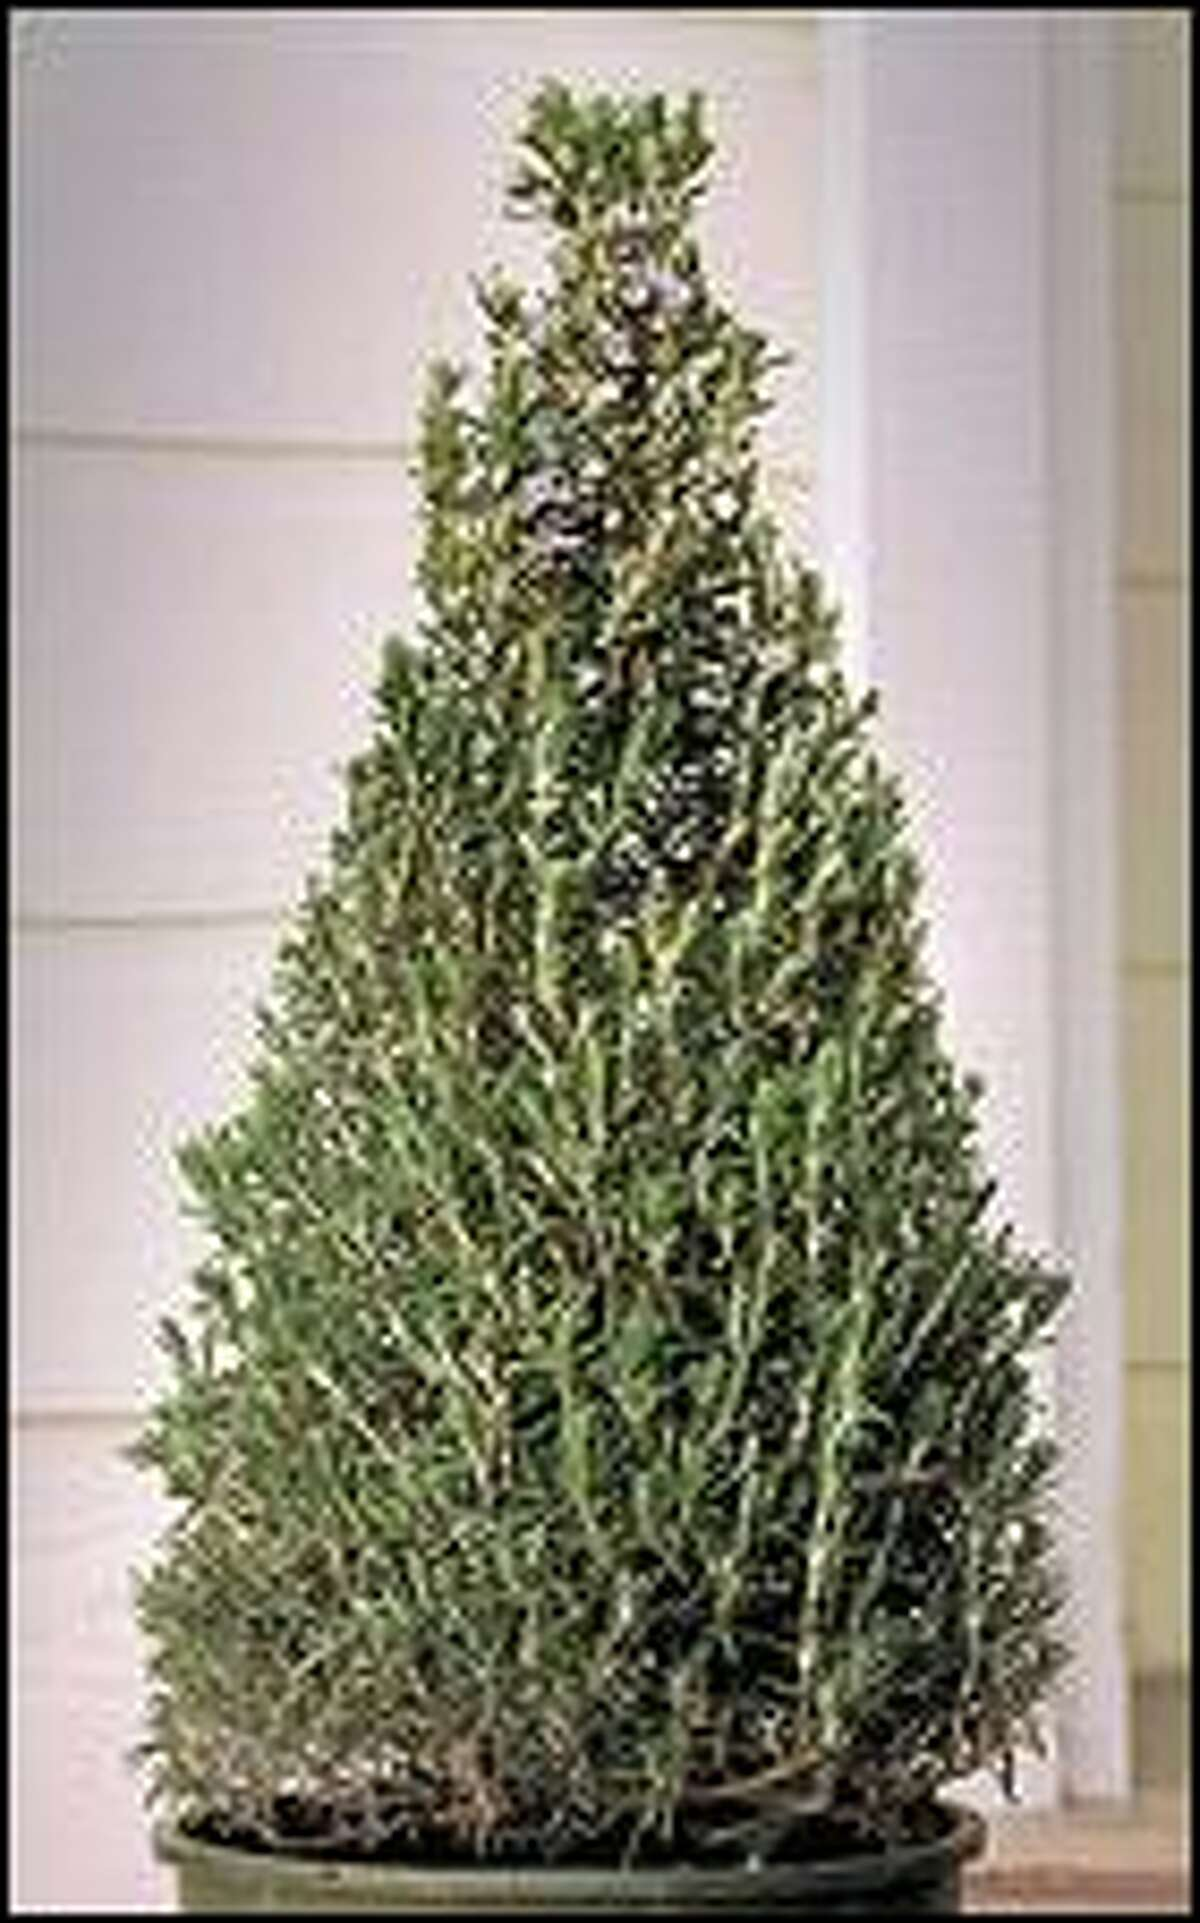 Ciscoe S To Do List Rosemary Topiary Makes A Nice Gift But Keep It Outside